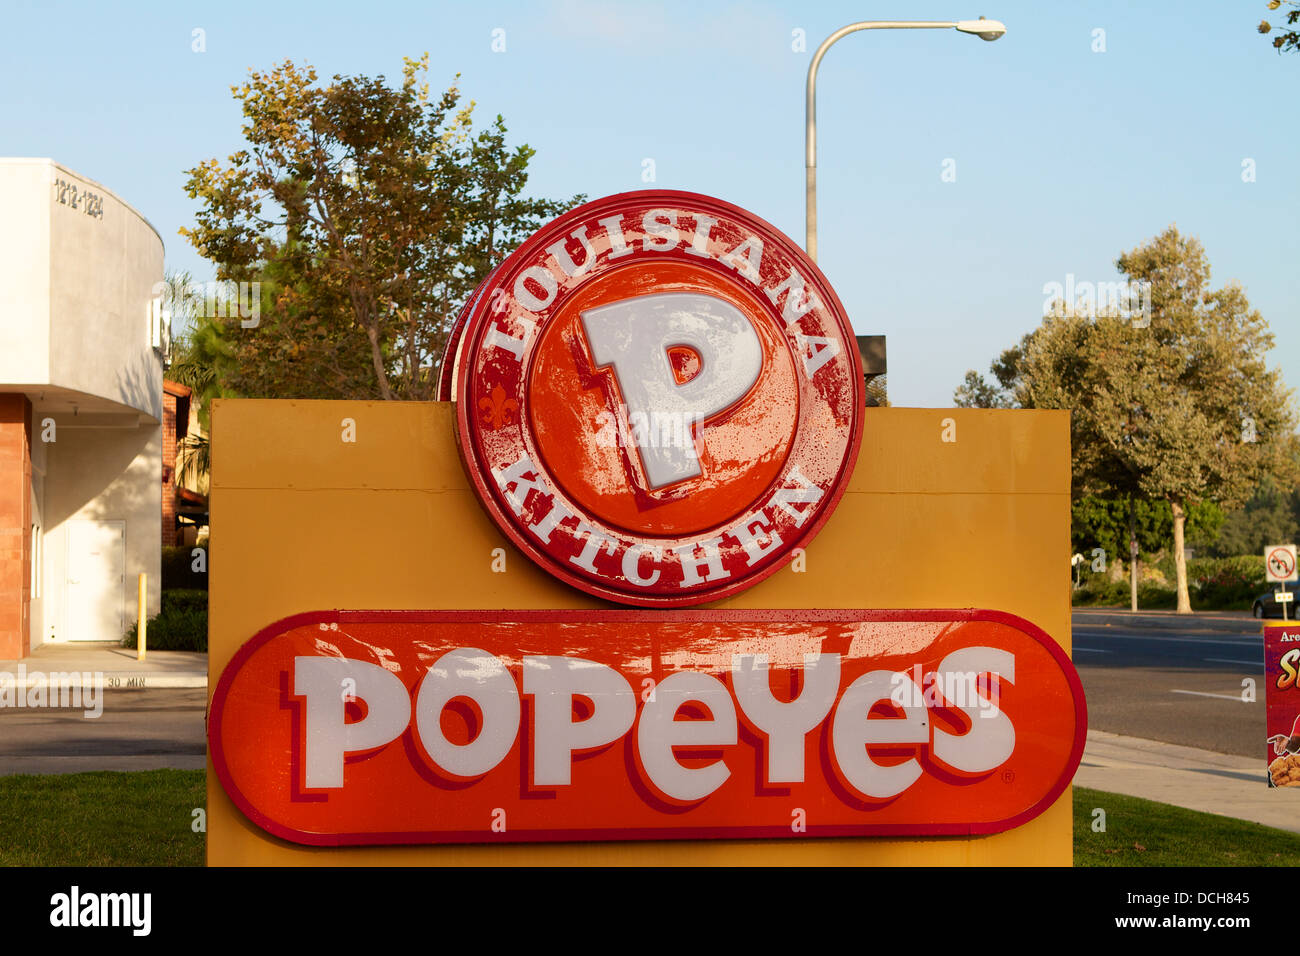 Popeyes Chicken Stock Photos  Popeyes Chicken Stock Images  Alamy